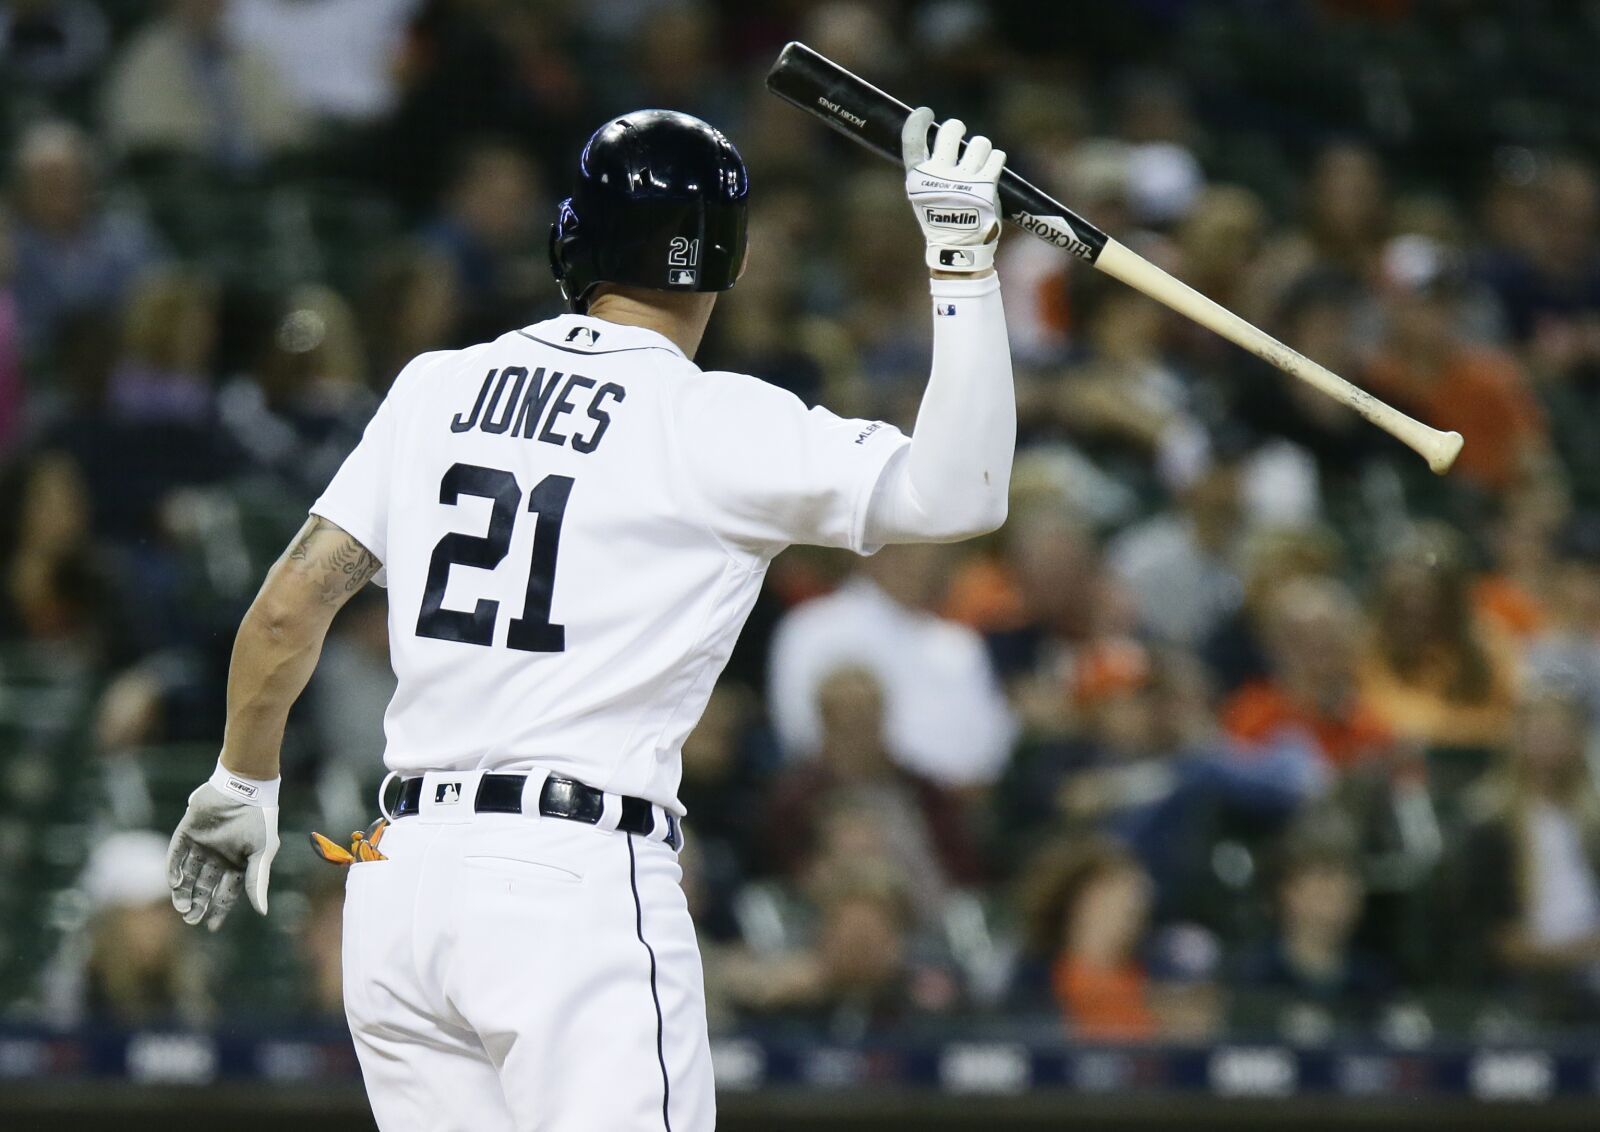 Detroit Tigers: It's been a rough past couple of days